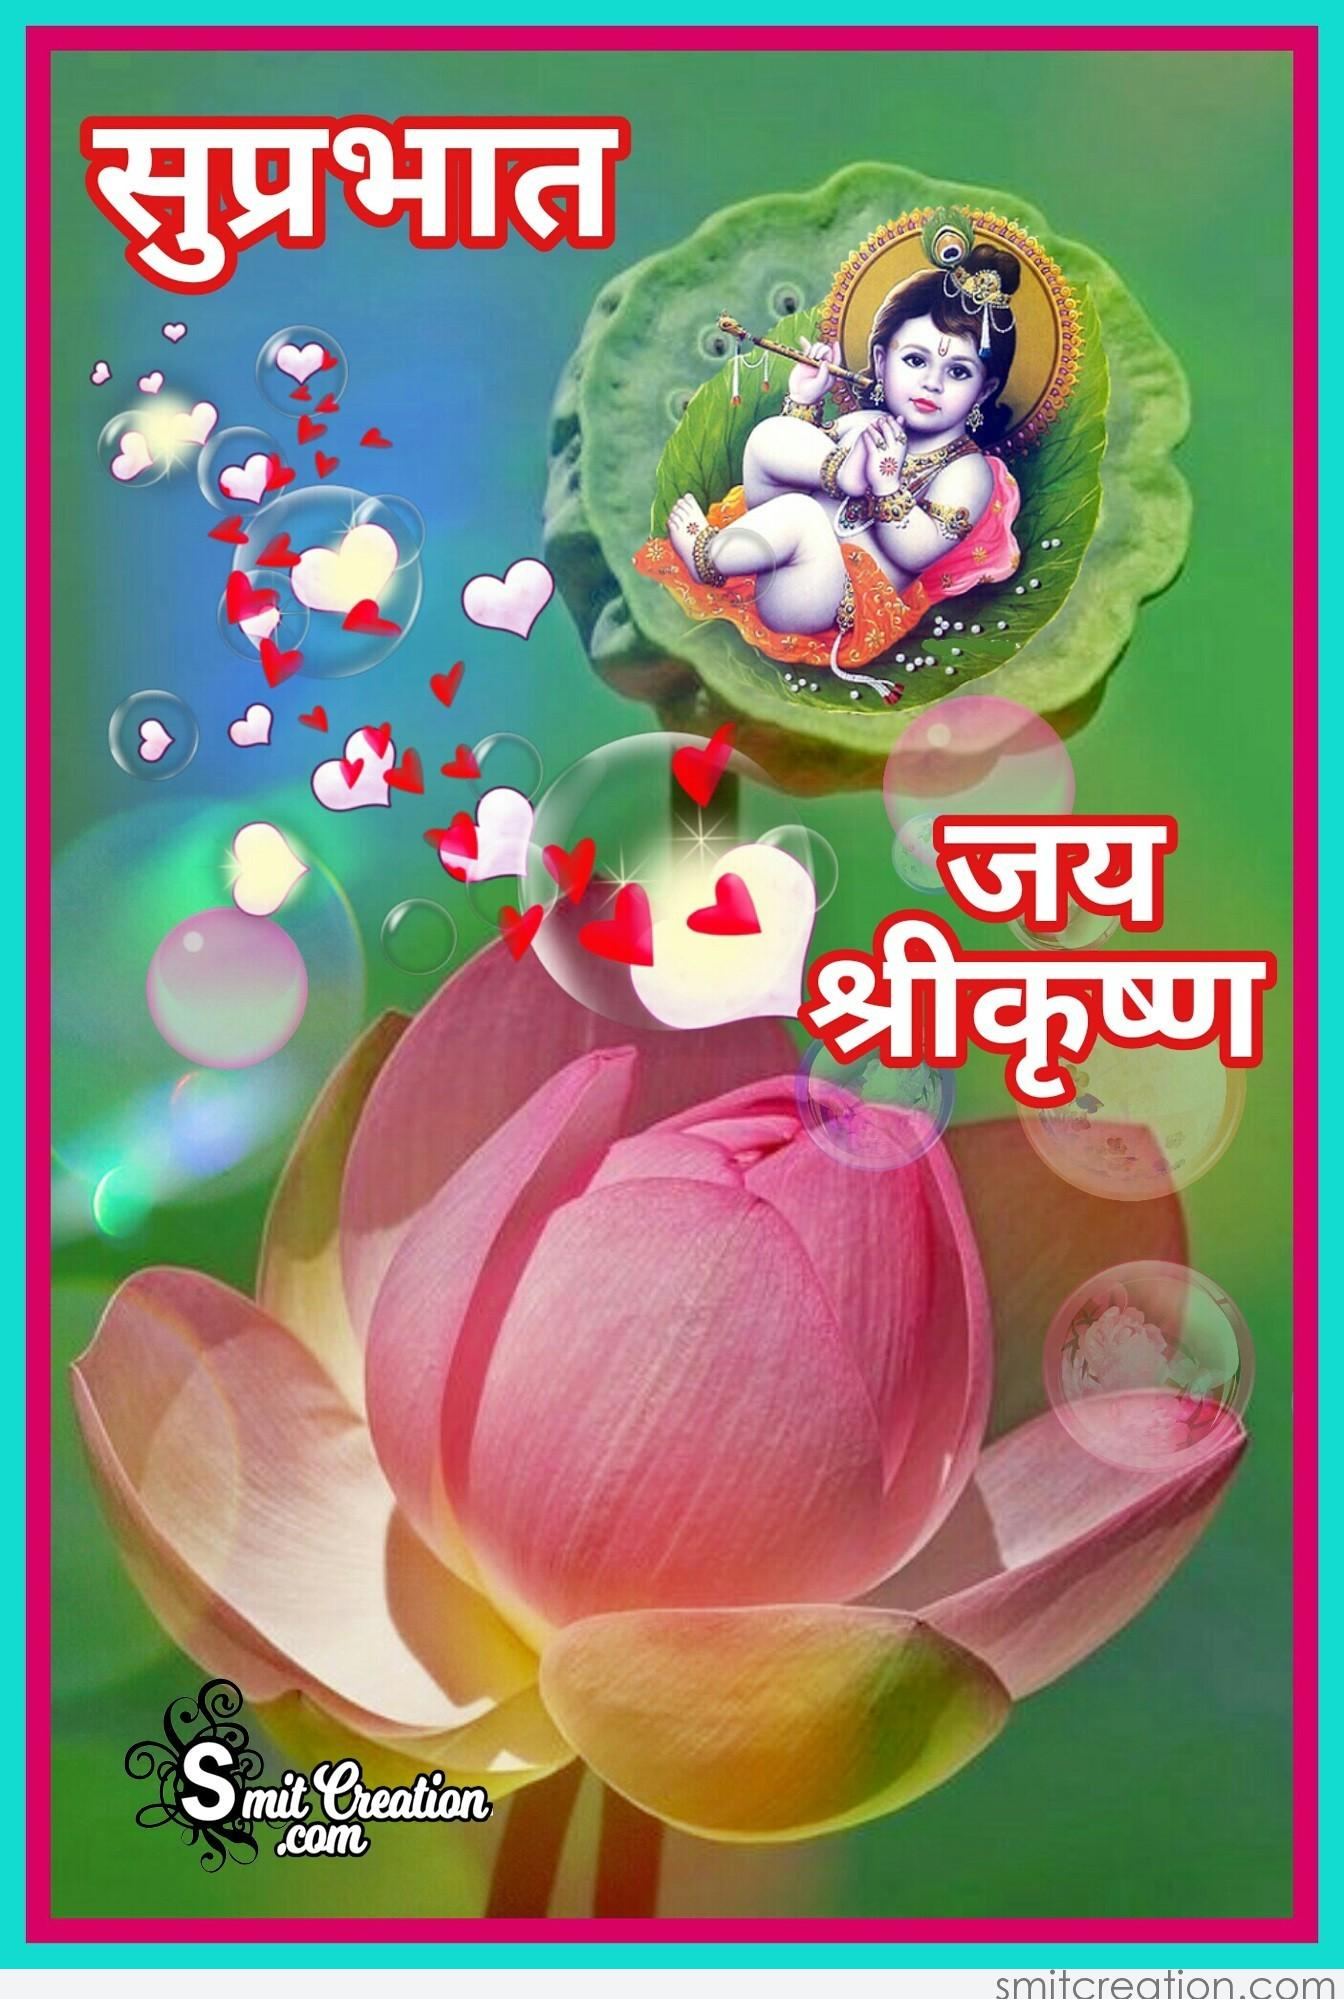 Suprabhat God Images Pictures and Graphics - SmitCreation